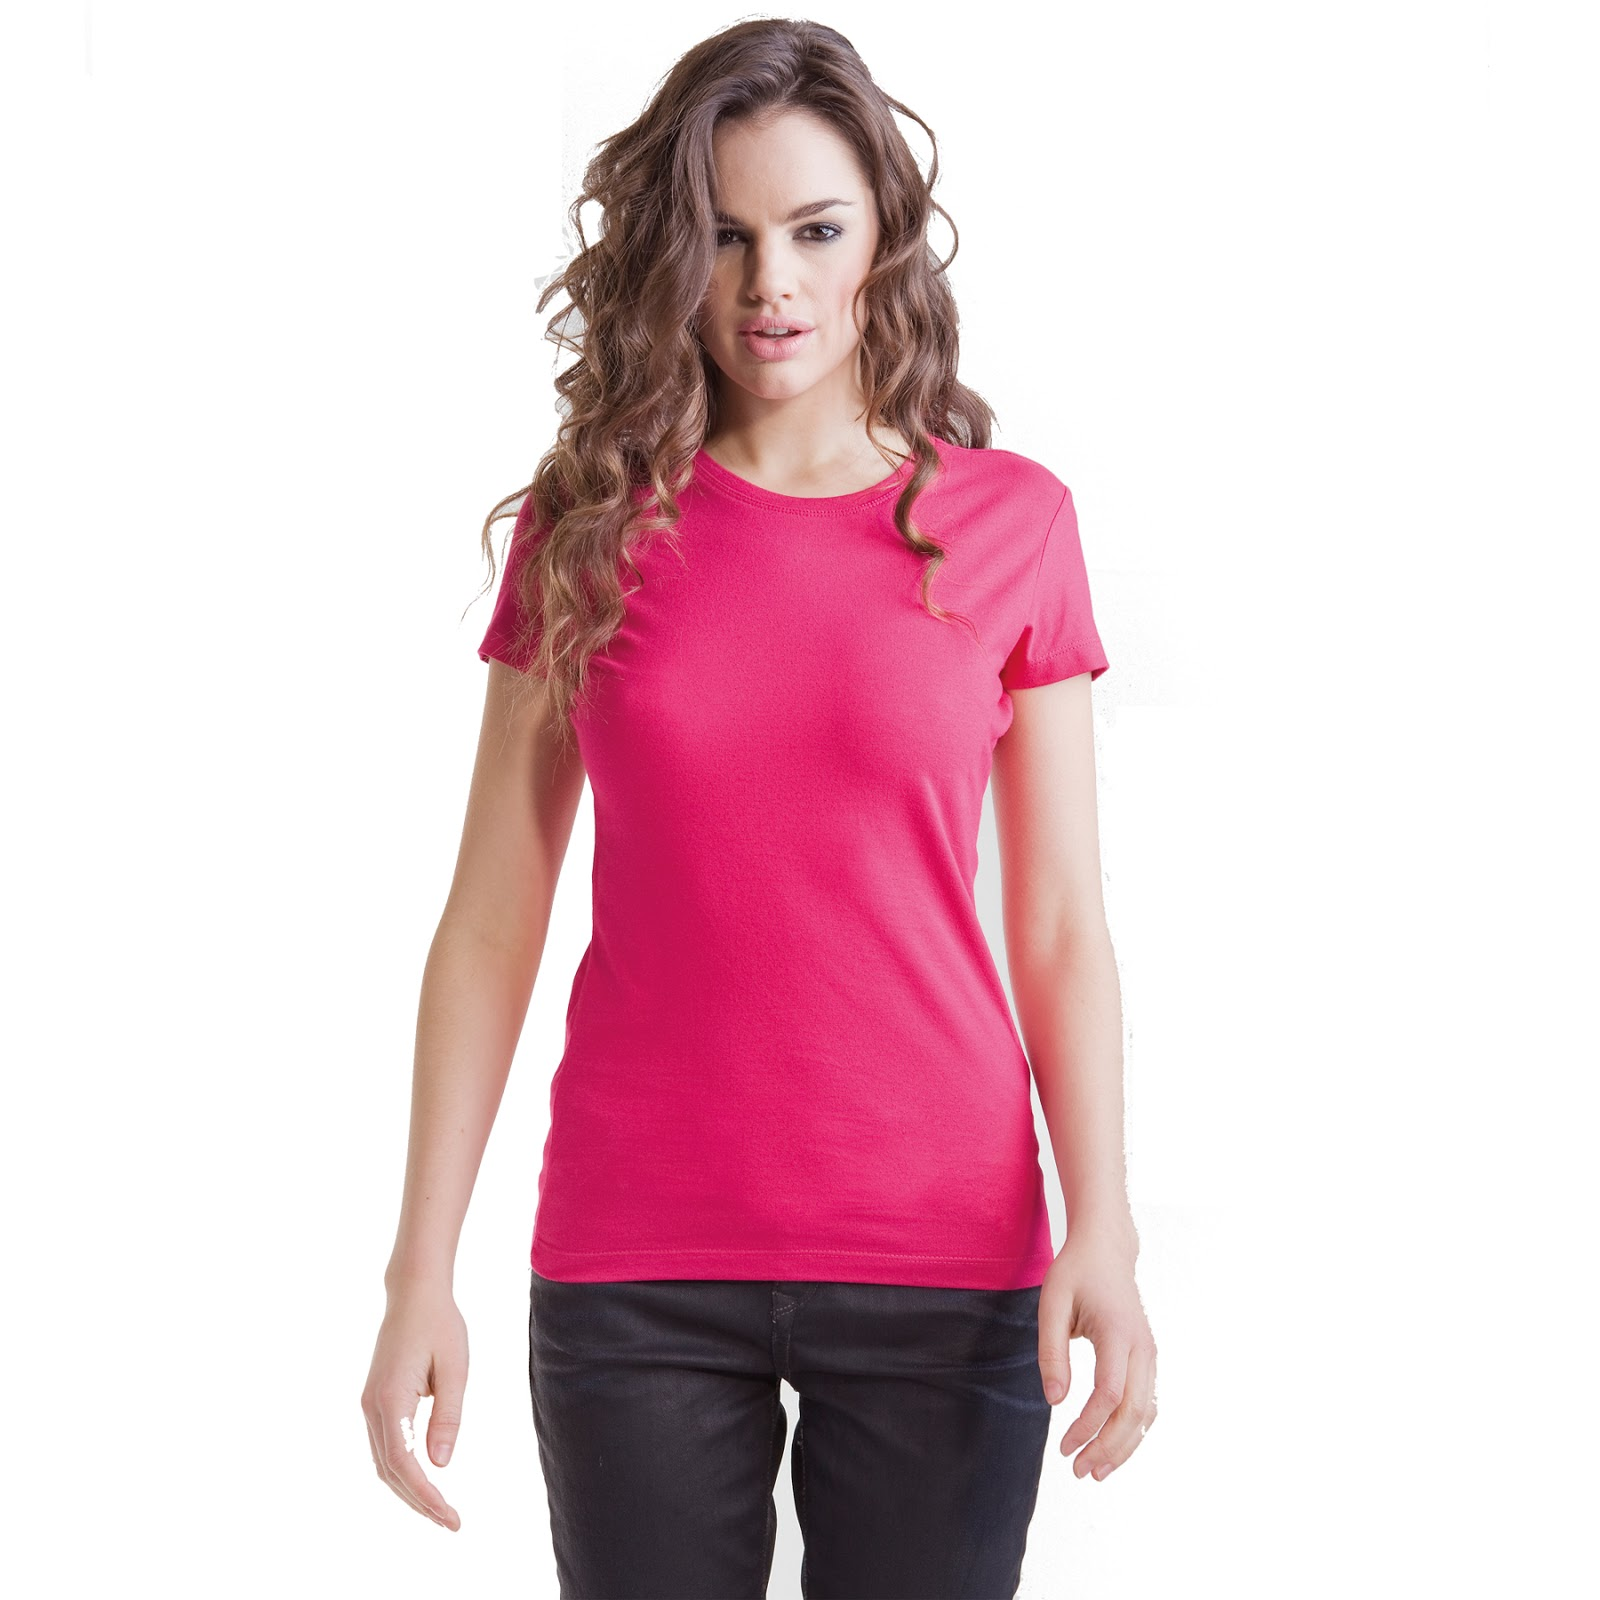 Cotton Ladyfit Crew Neck T-Shirt from Skinnyfit